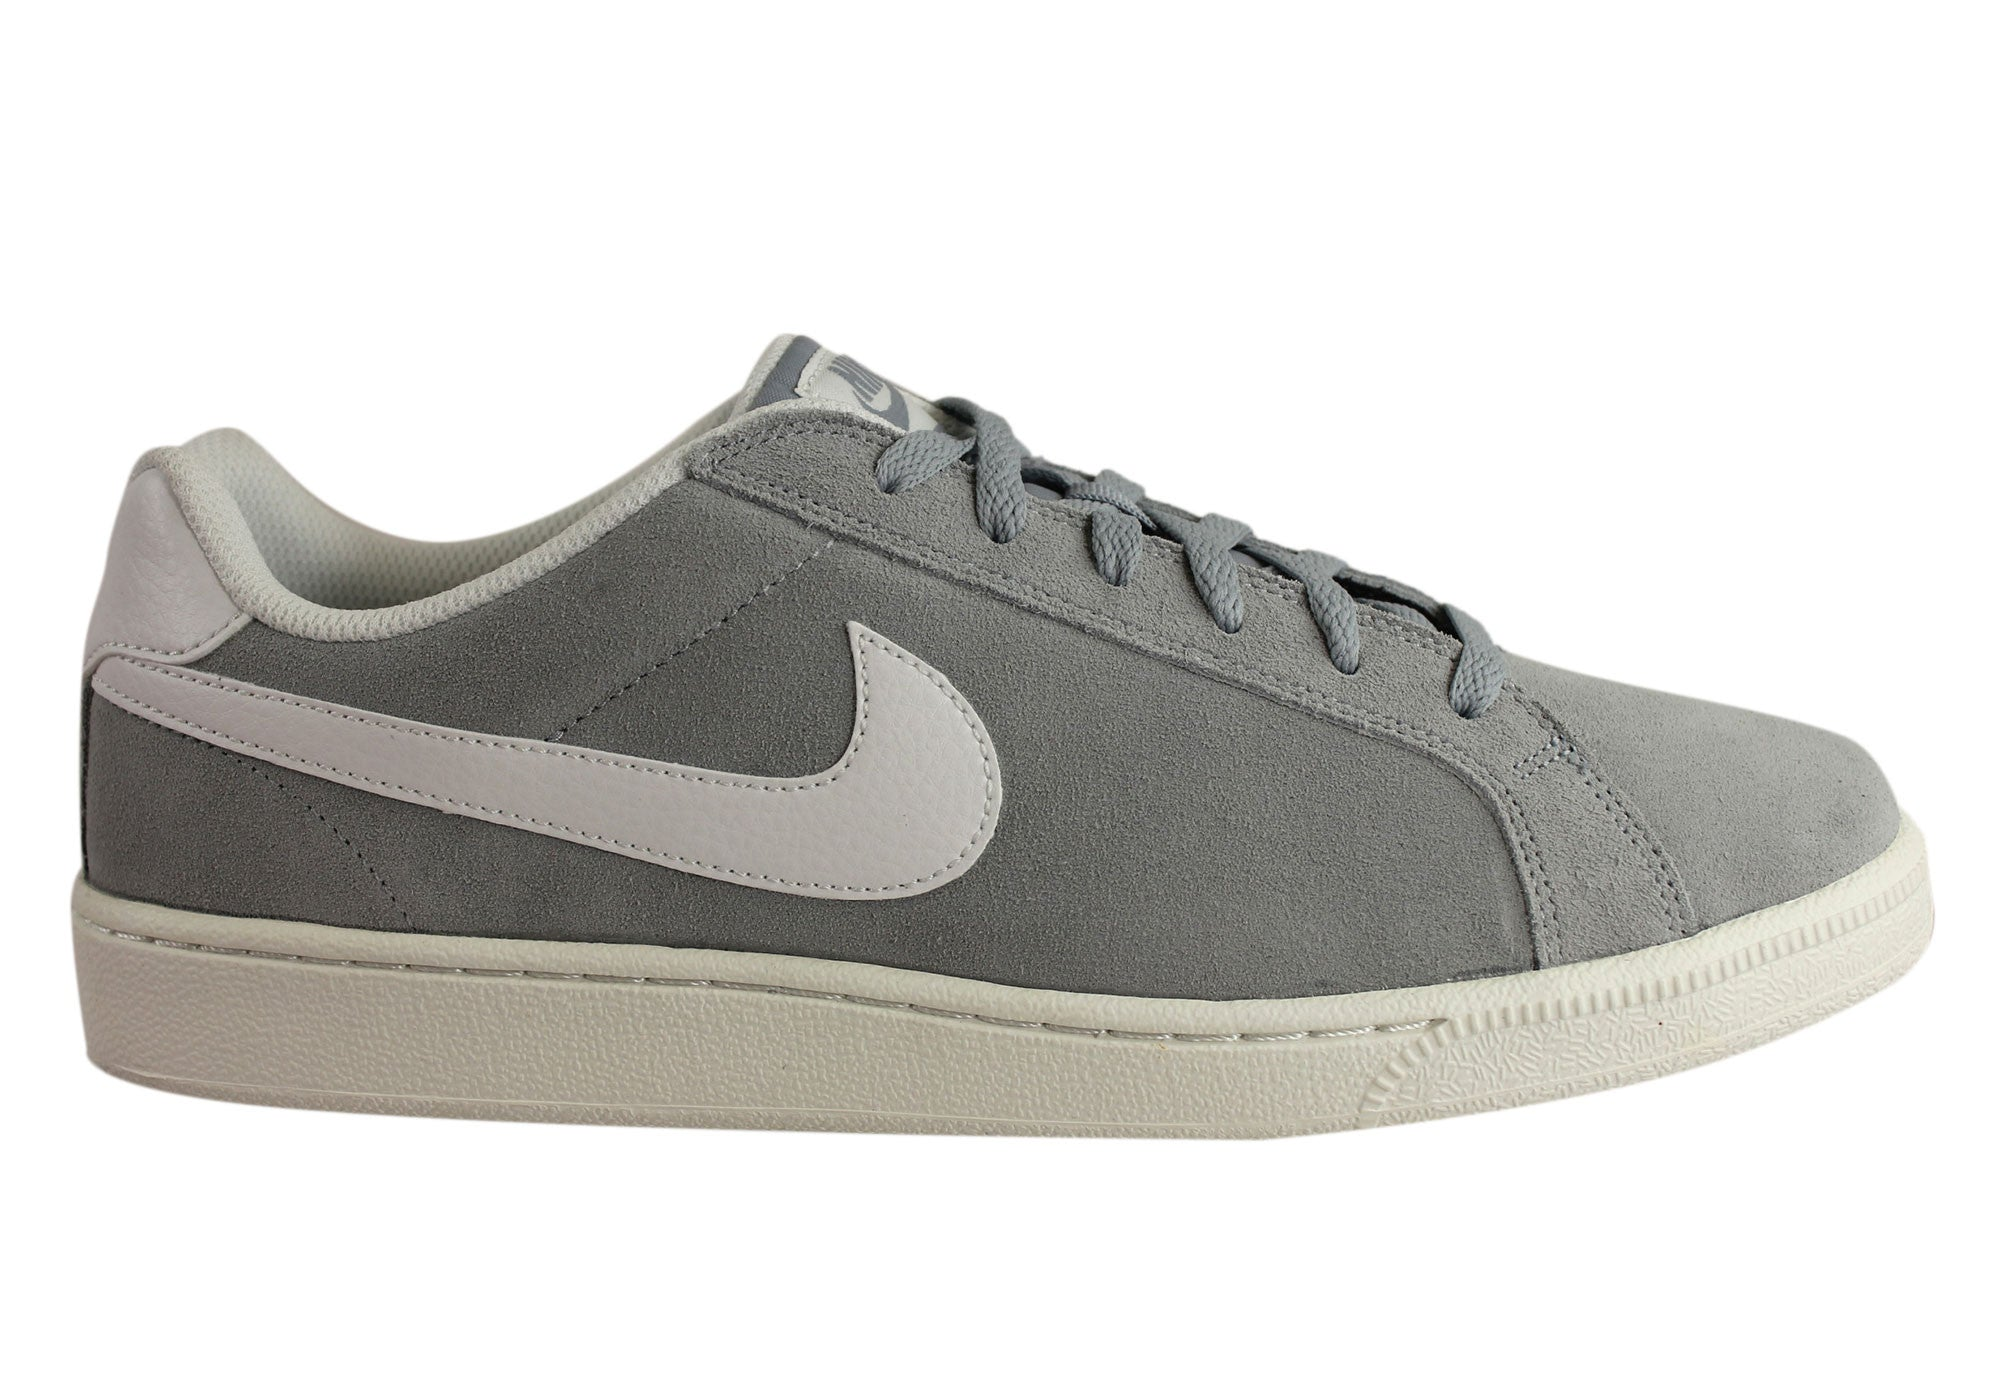 Nike Us Court Majestic Suede Men Us Nike 10 Gris Chaussures2760 Ebay cd8c56